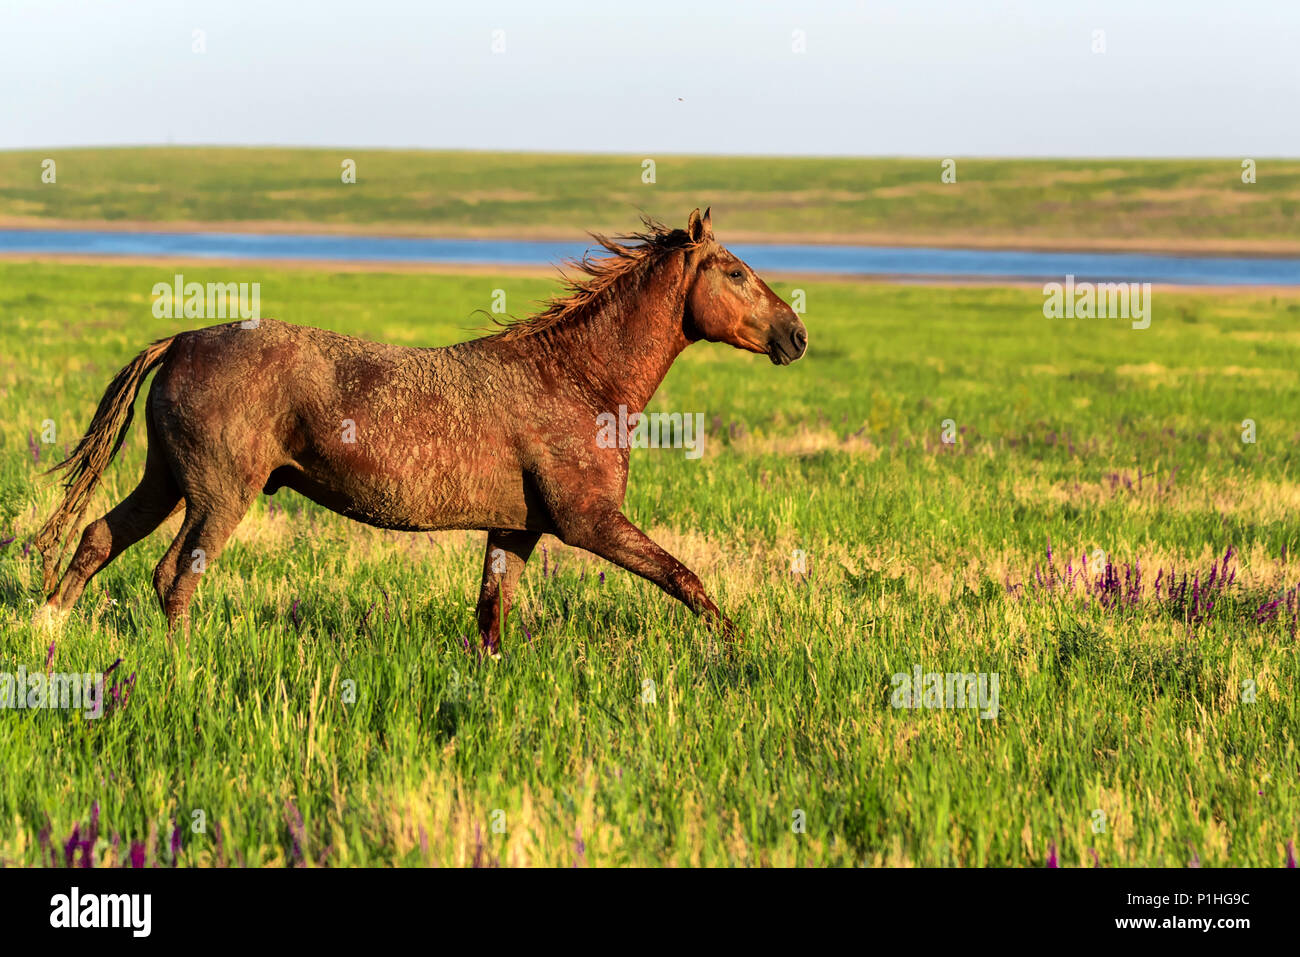 Wild horse runs in the sunlit meadow - Stock Image